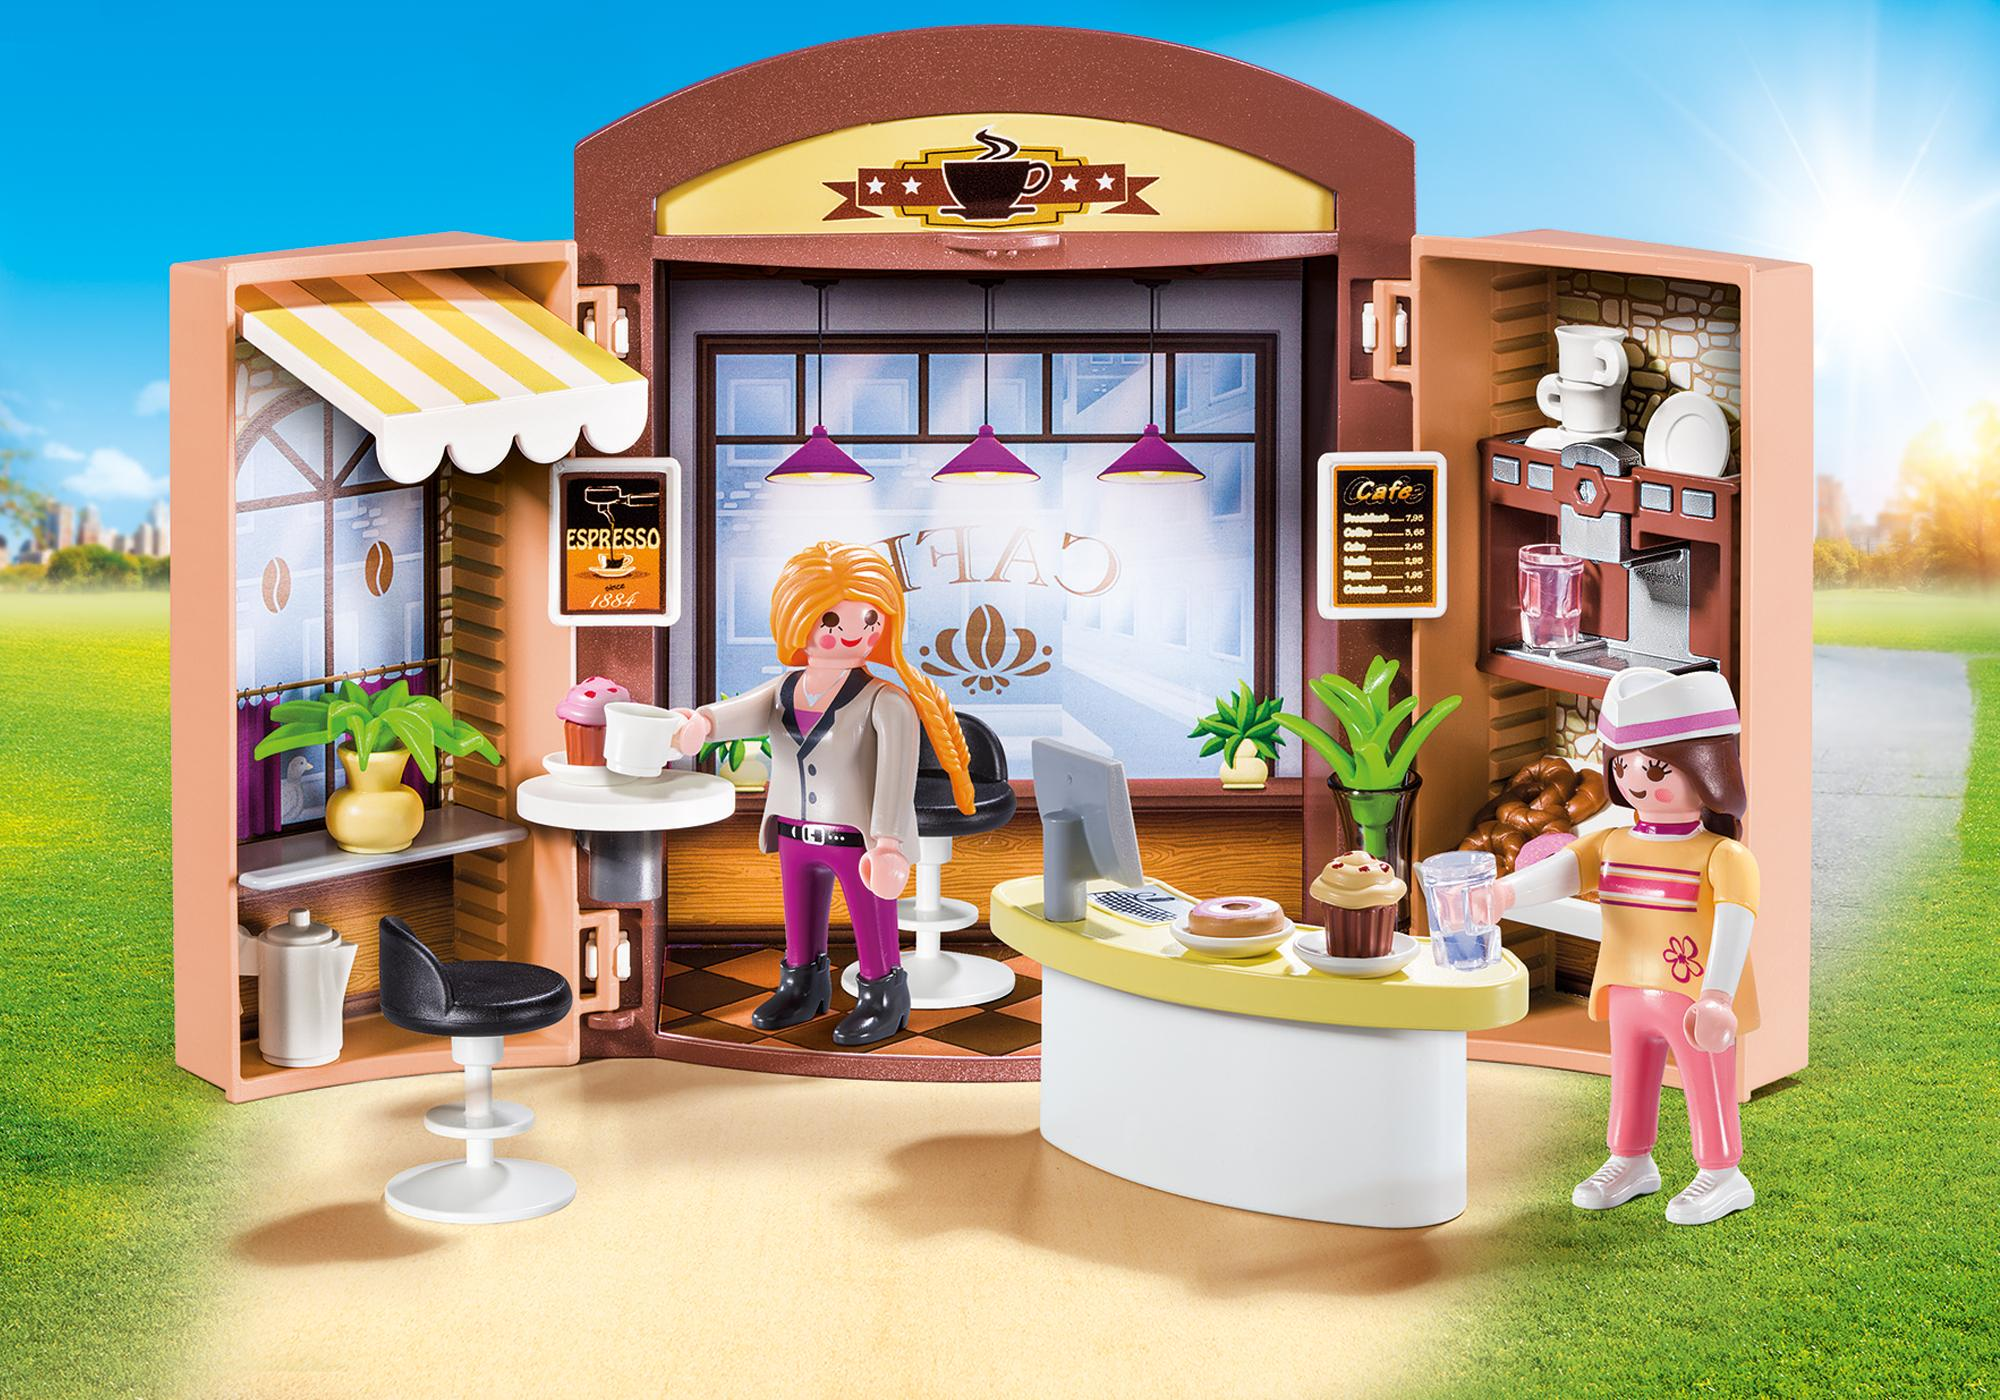 coffee shop play box 9109 playmobil 174 canada